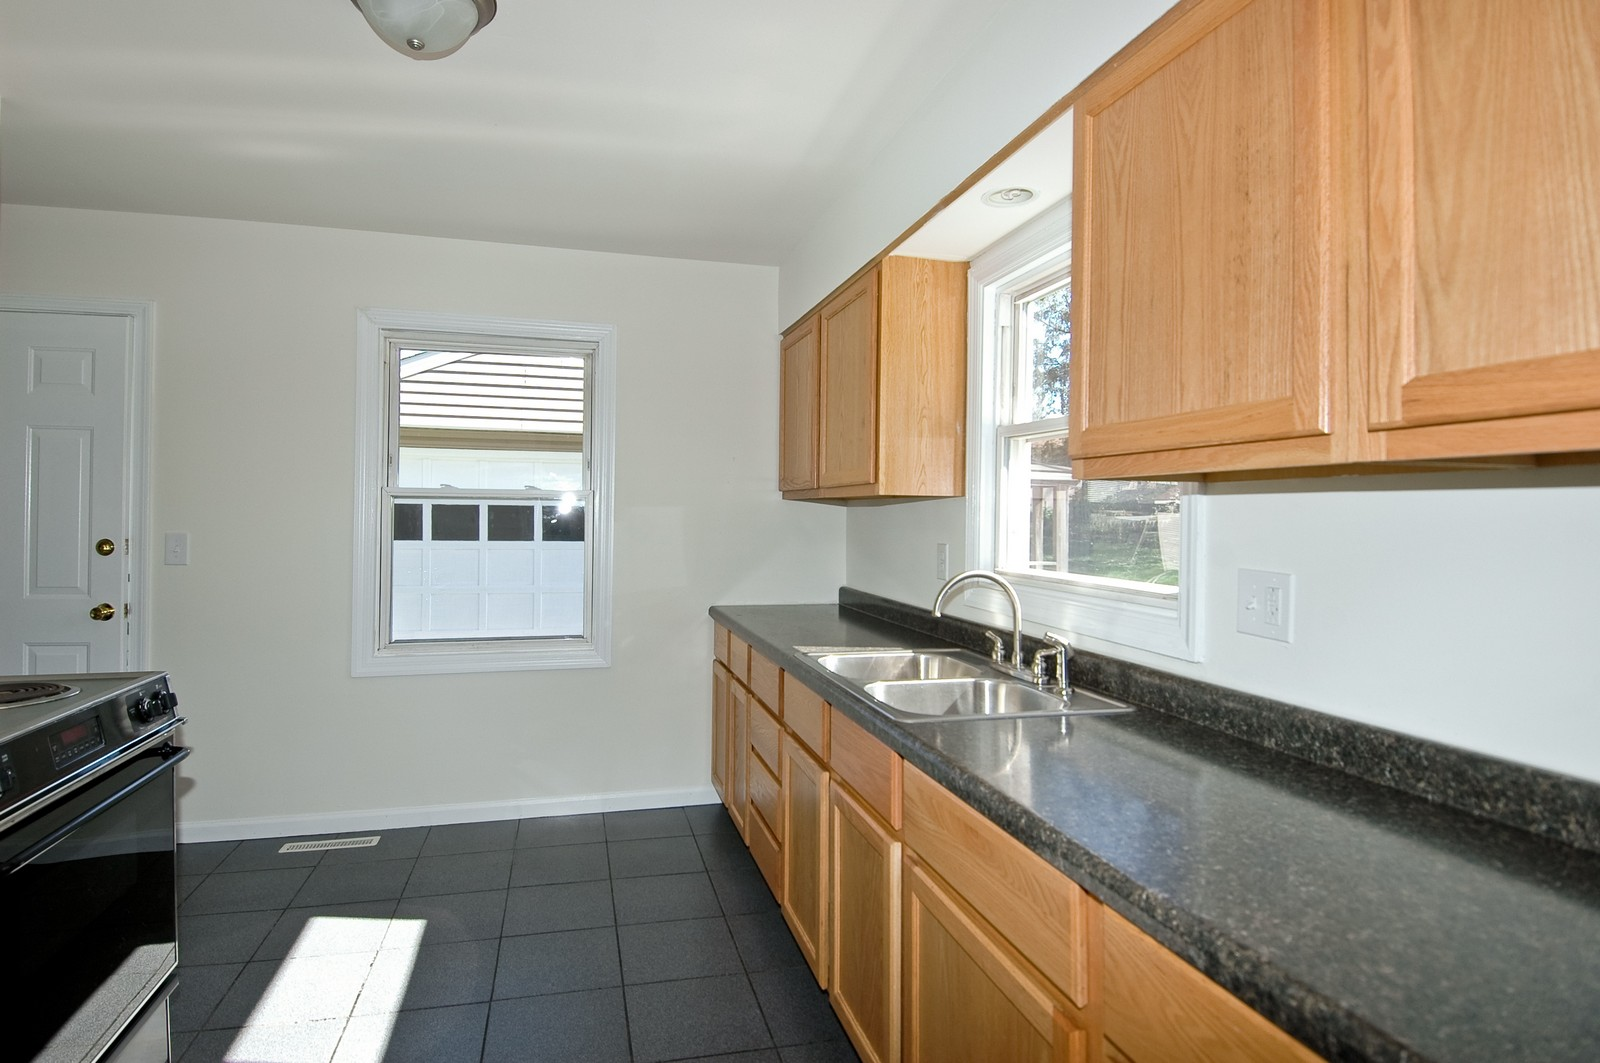 Real Estate Photography - 599 Kirk Ave, Elgin, IL, 60120 - Kitchen